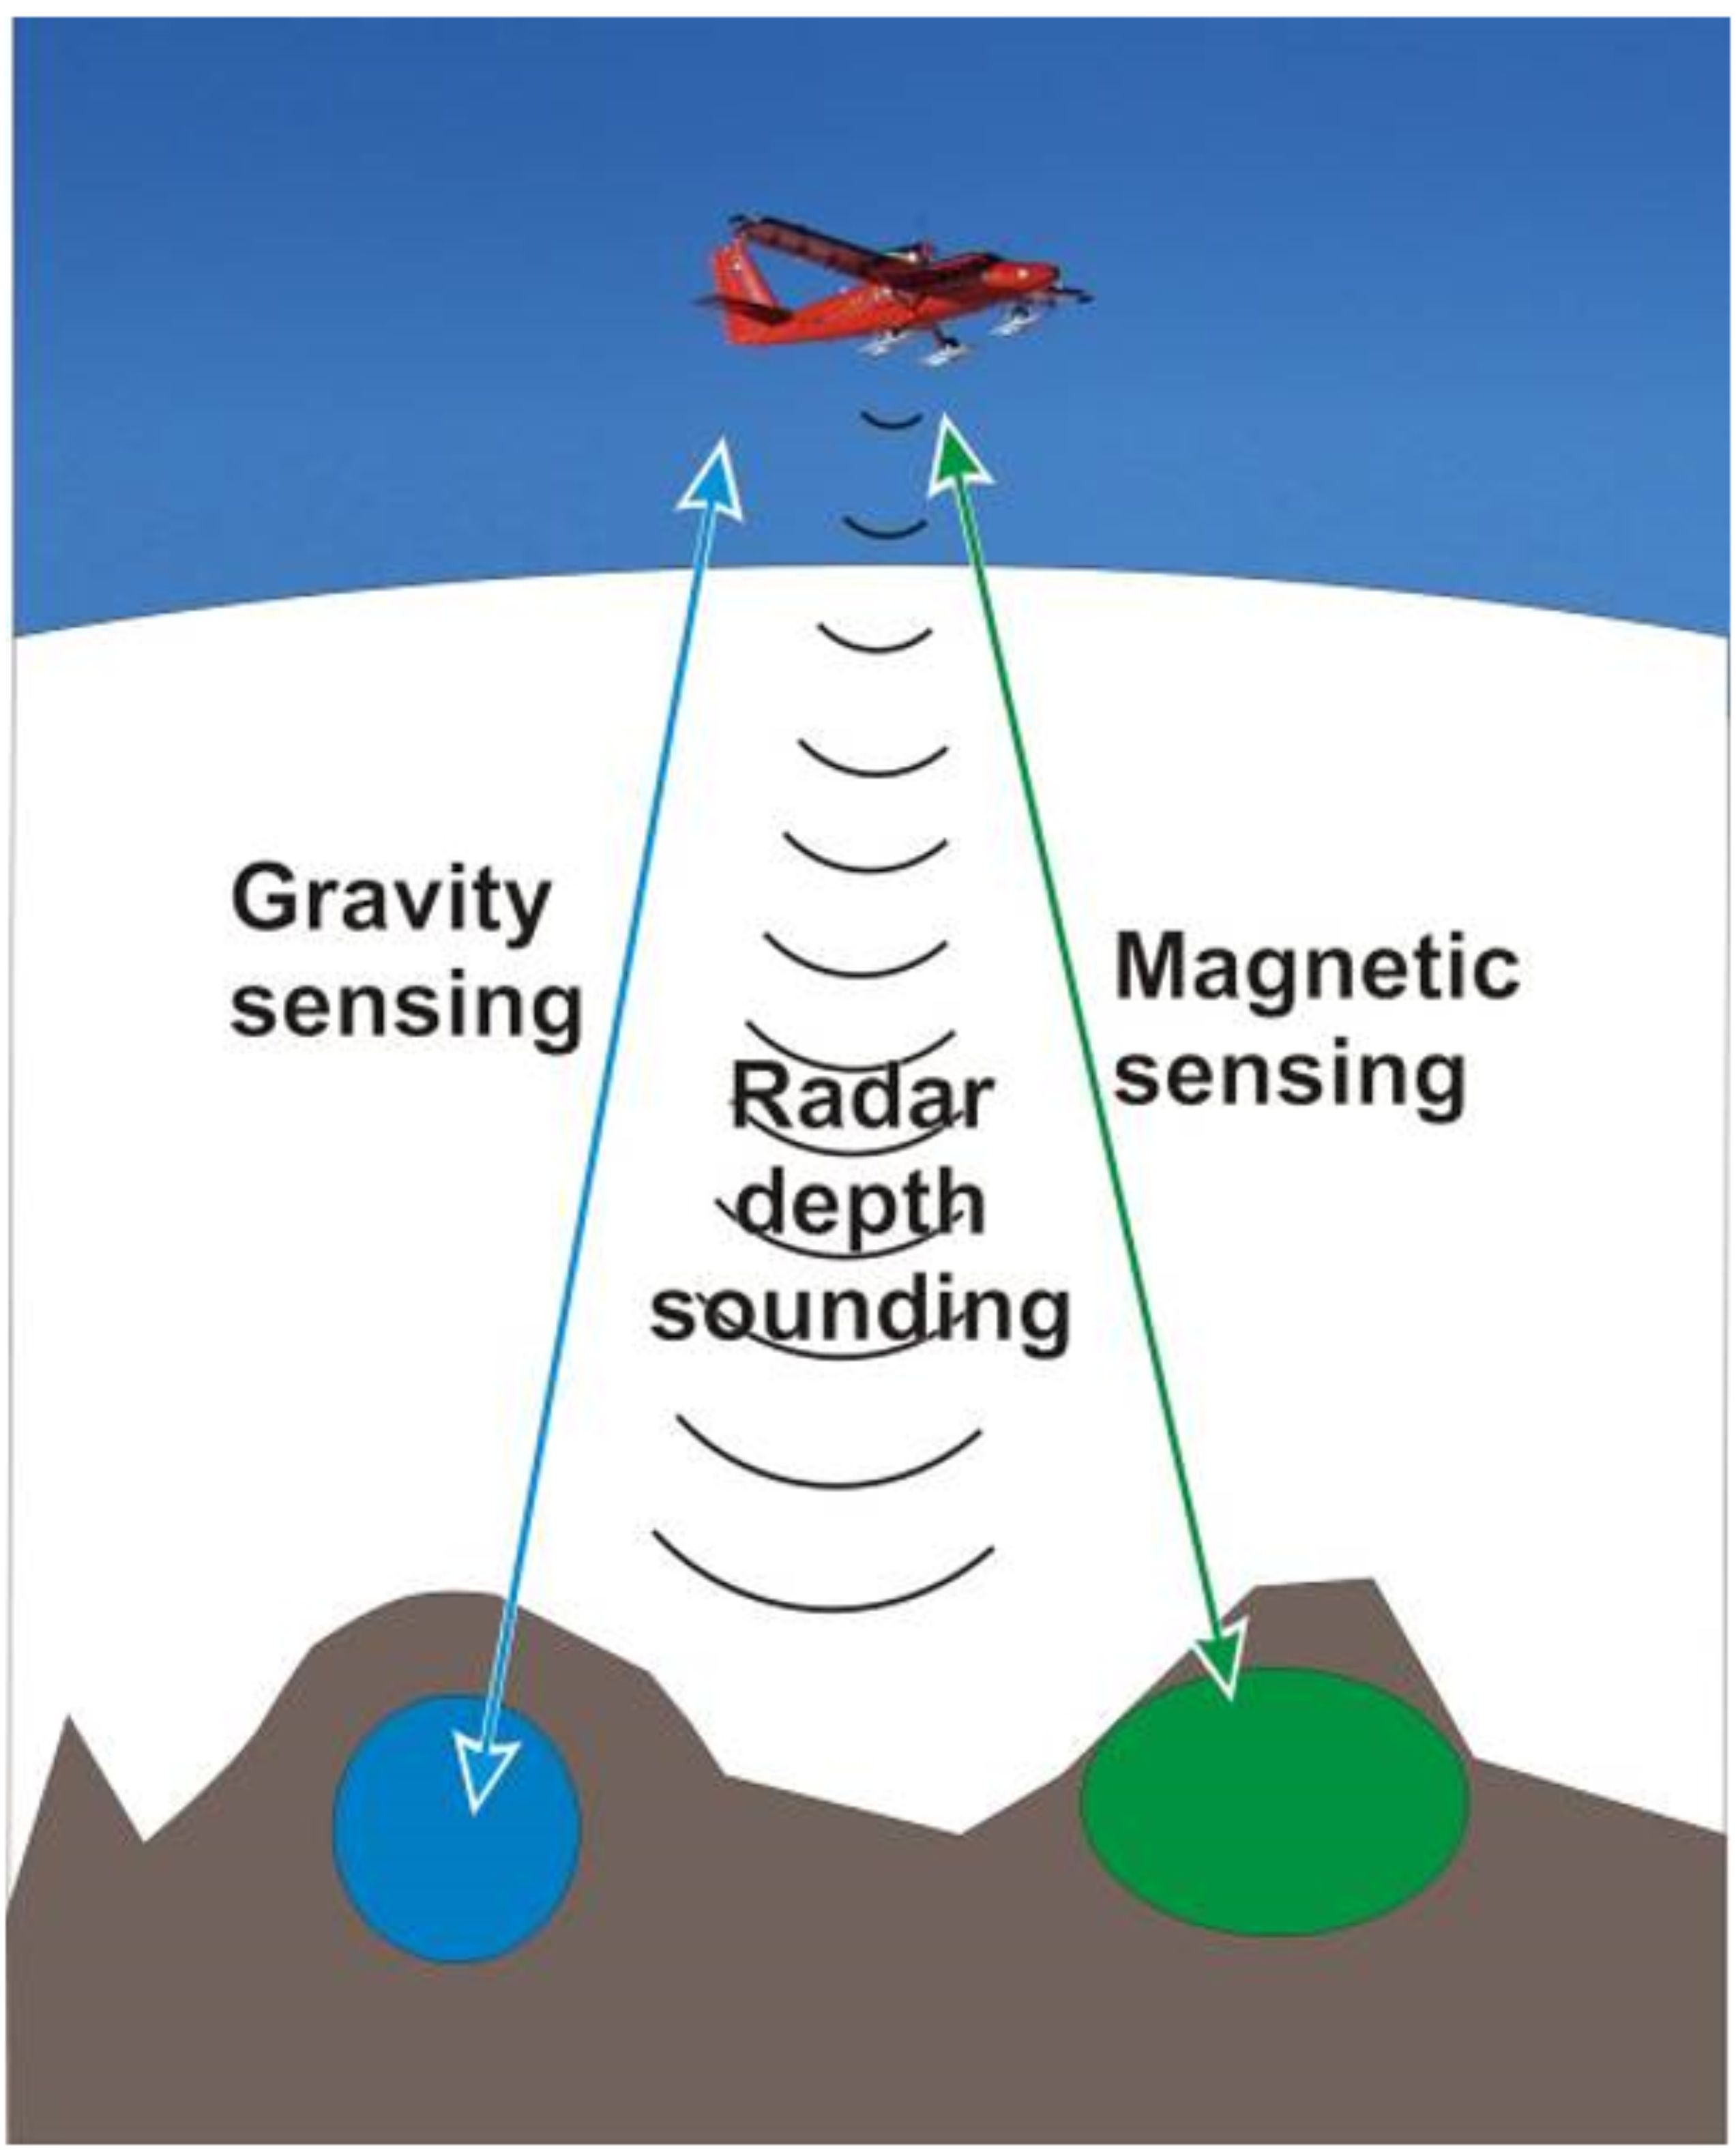 Key scientific techniques.        Gravity sensors: Map regional variations in the geoid (global gravity field) and density variations in the local underlying rocks. Radar: Reveals subglacial topography, subglacial lakes and layers in the ice. Magnetic sensors:  Map magnetic properties of underlying rocks.                                    Laser and ASIRAS radar: Ice surface elevation and shallow snow processes.